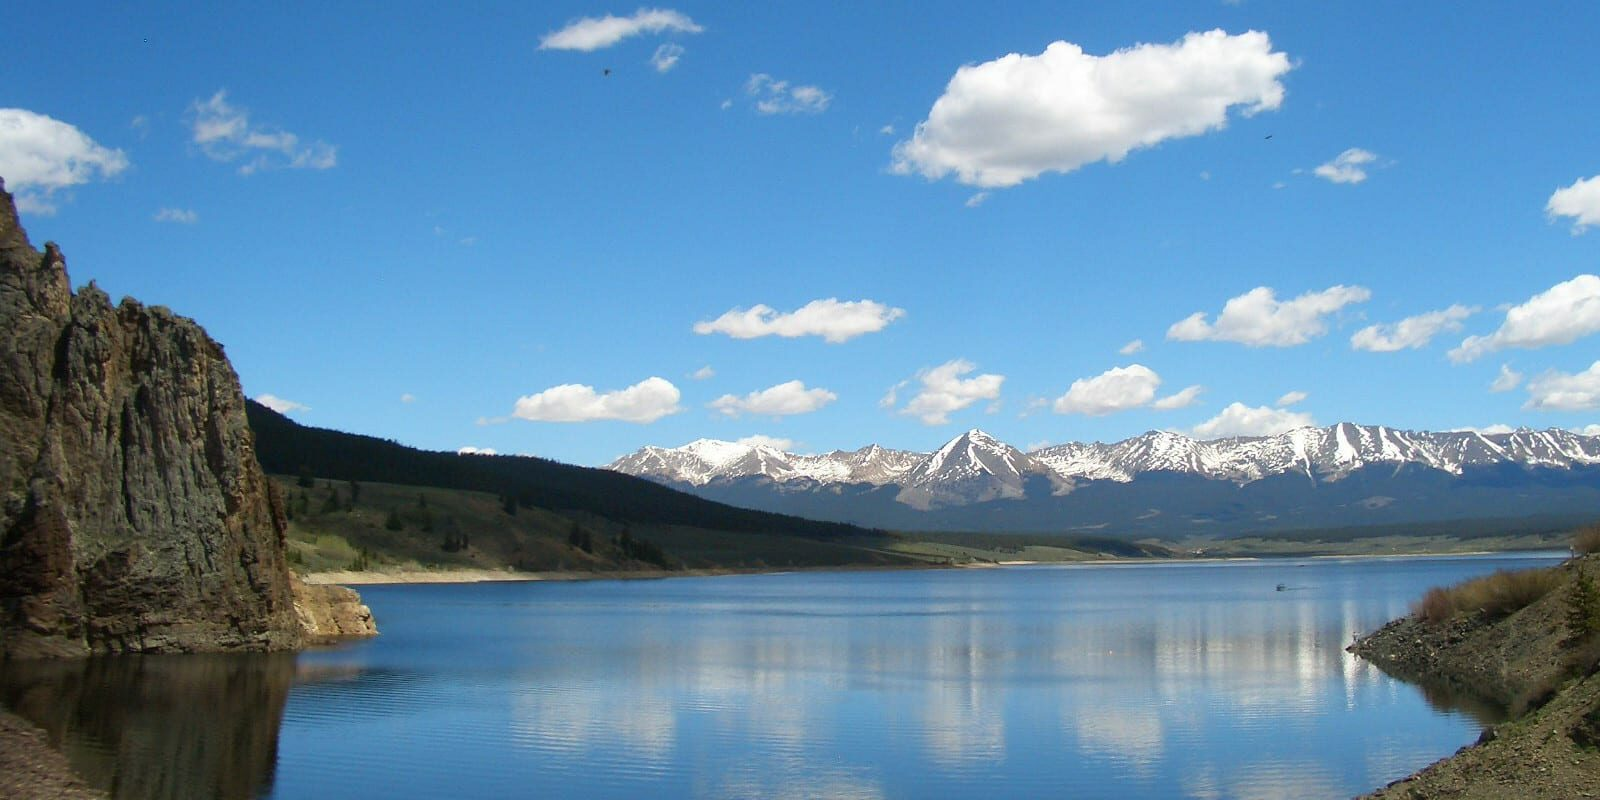 Image of the Taylor River with mountains in the background in Colorado